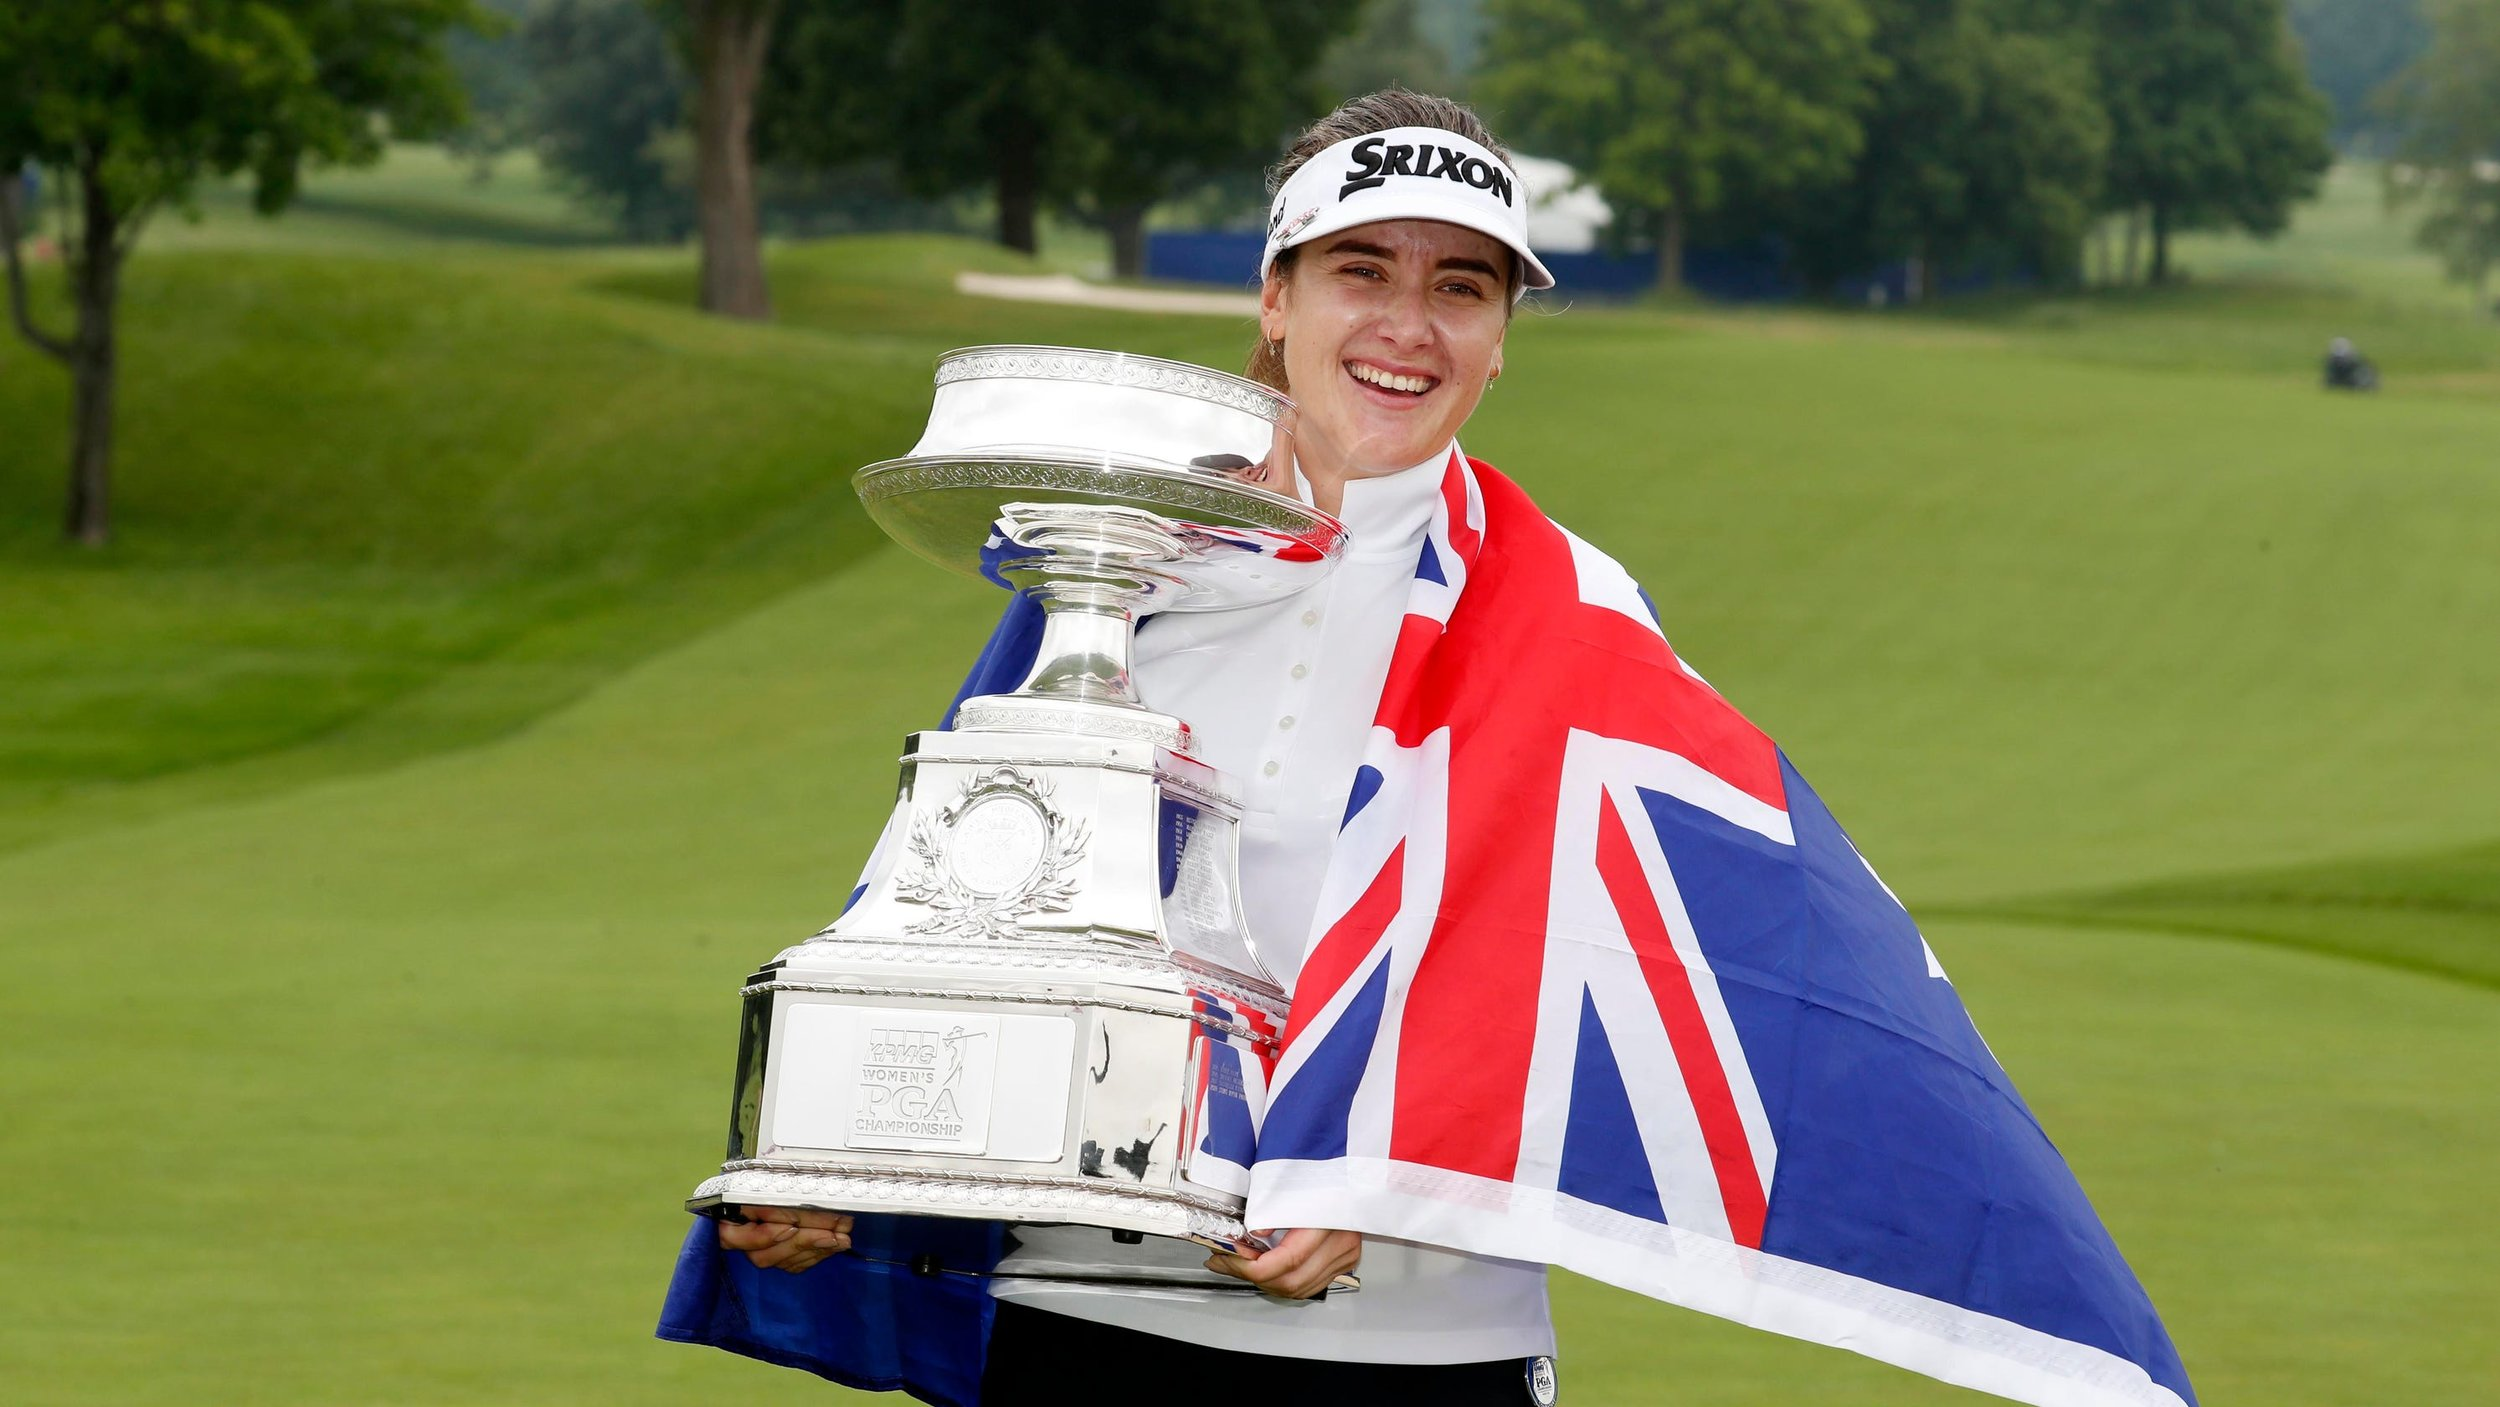 Sitting outside the top 100 ranked players, Hannah Green had no right to win a major tournament